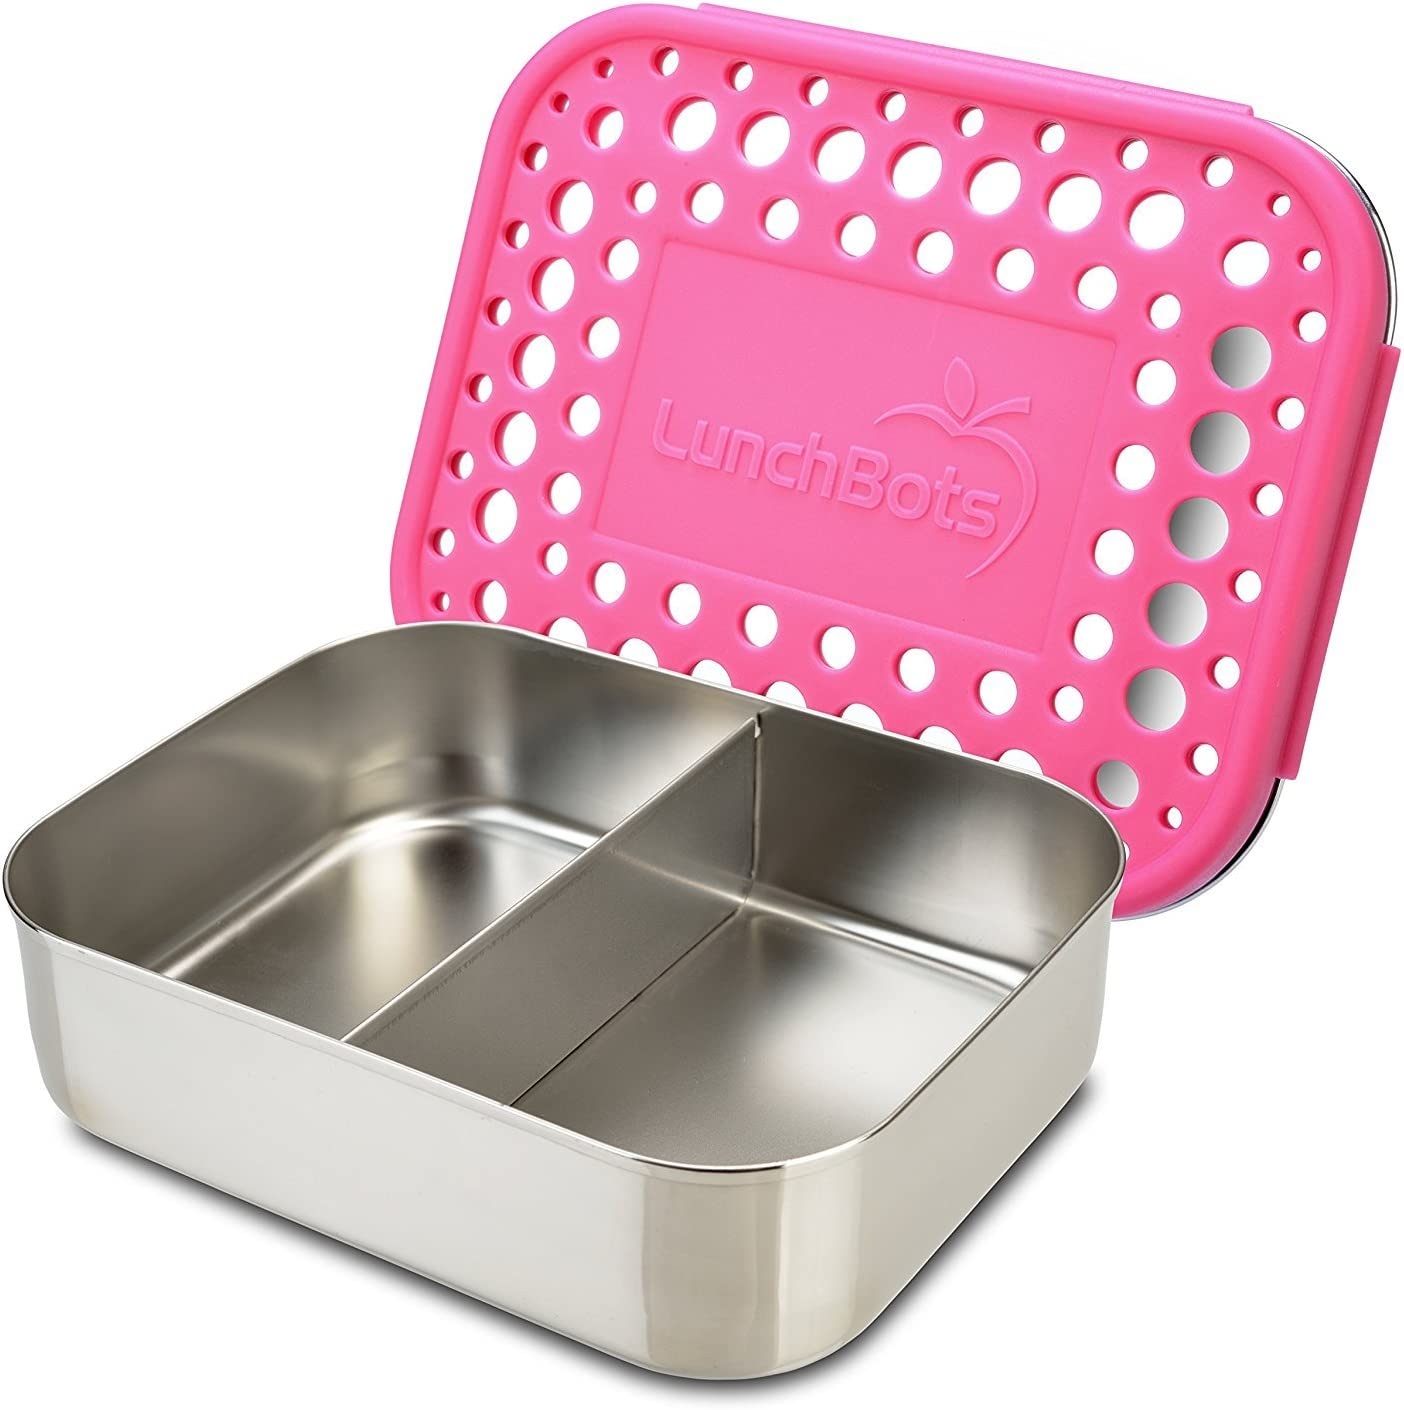 LunchBots Medium Duo Snack Container - Divided Stainless Steel Food Container - Two Sections for Half Sandwich and a Side - Eco-Friendly - Dishwasher Safe - Stainless Lid - Pink Dots